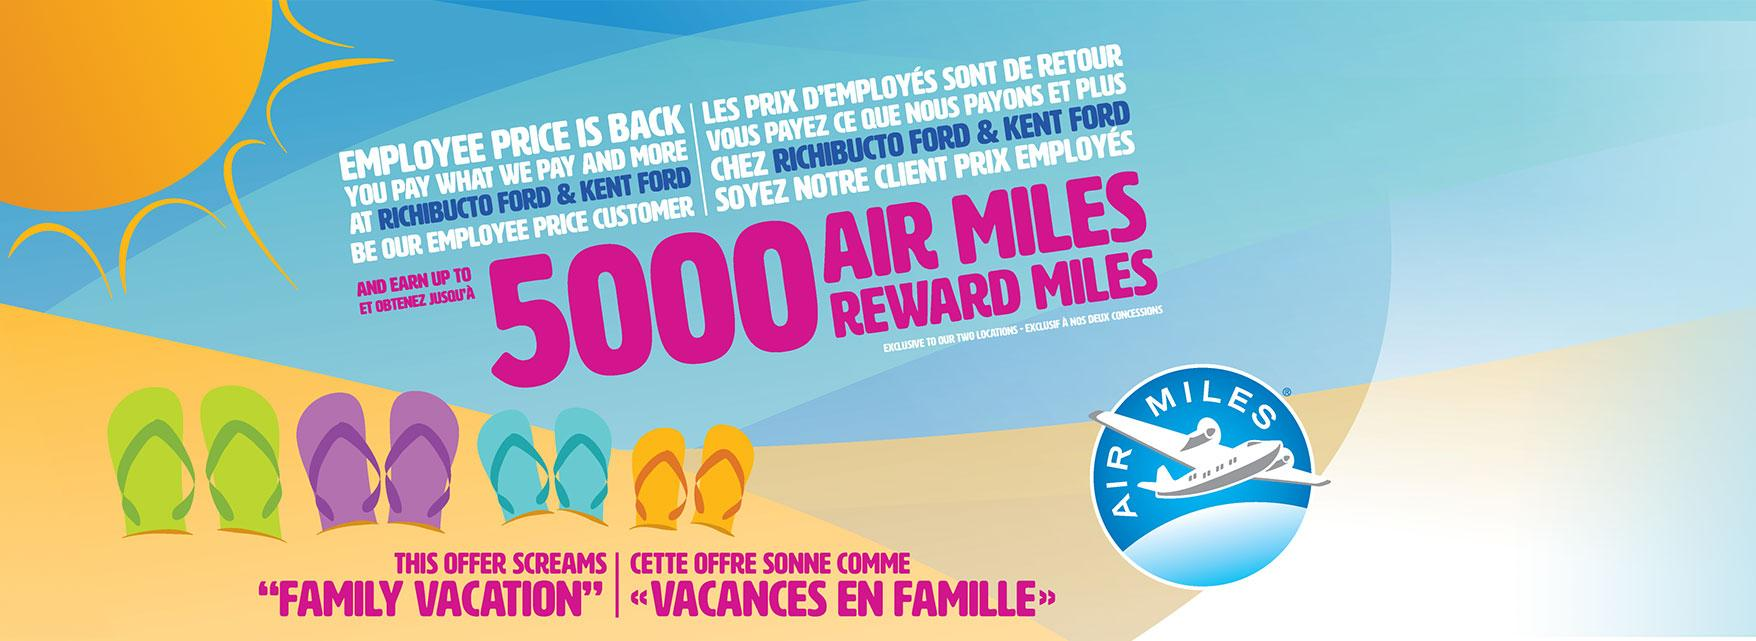 Air miles Ford Employee Pricing Richibucto Motors